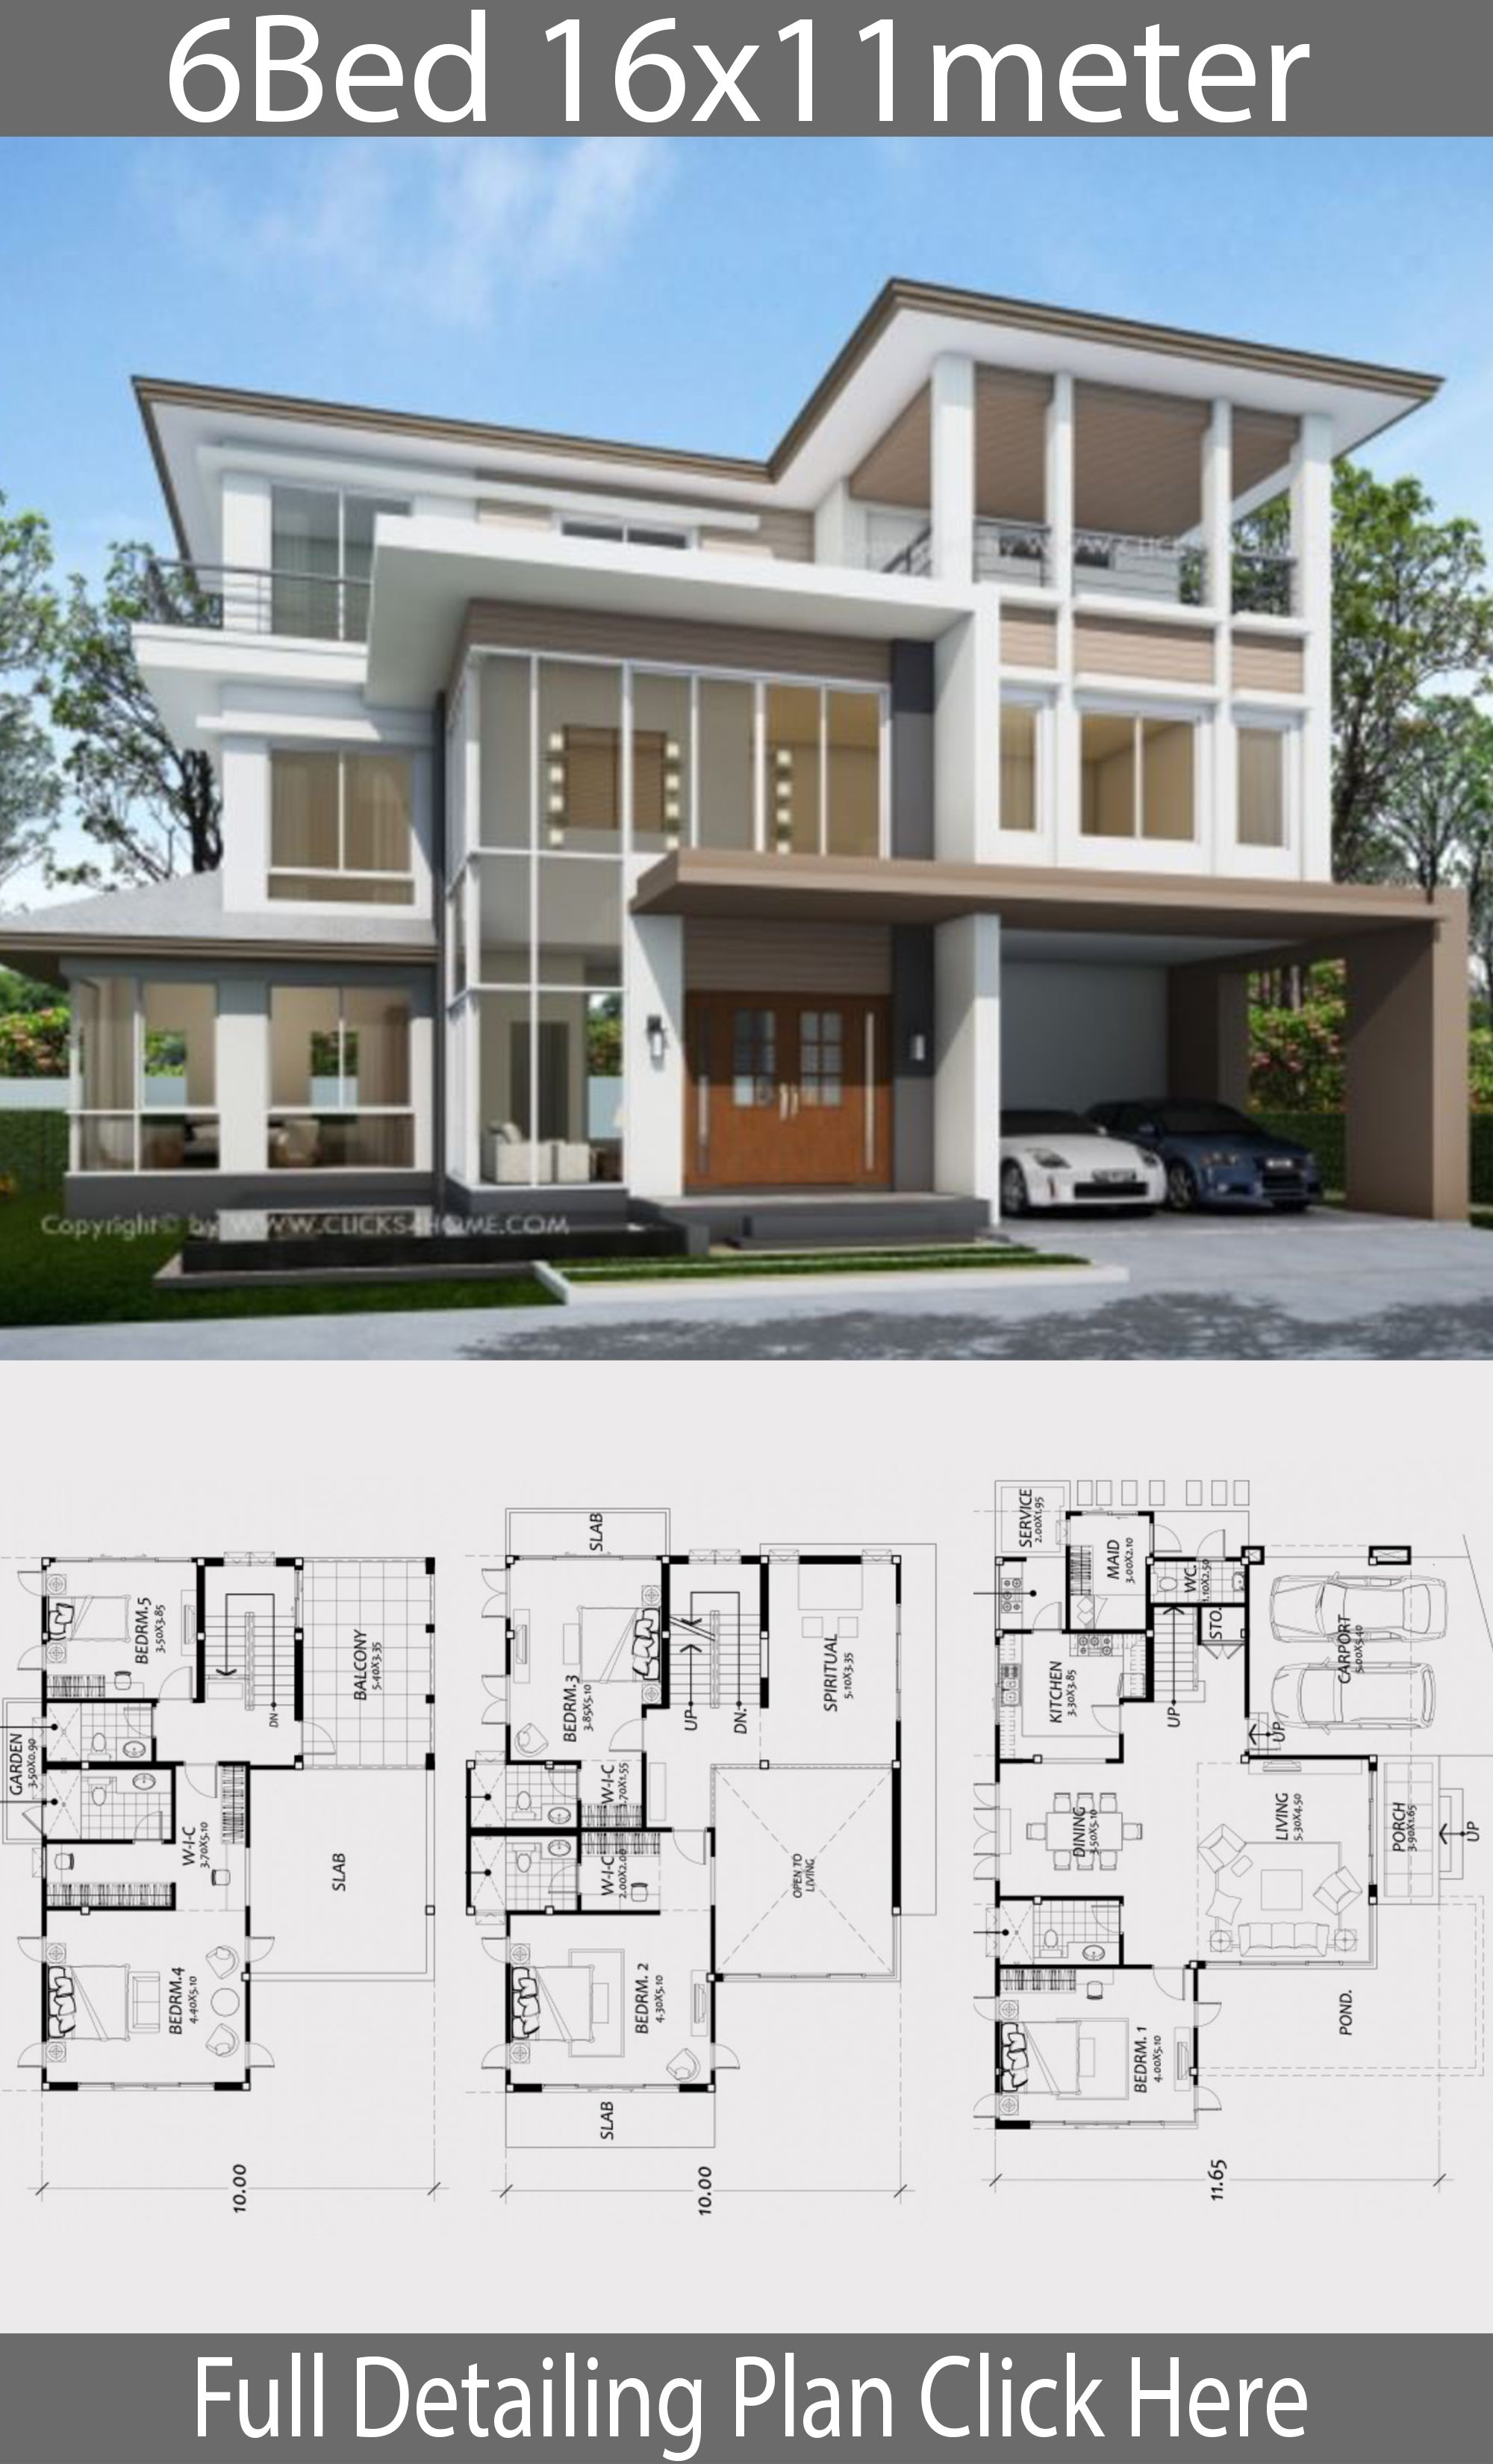 Home Design Plan 16x11m With 6 Bedrooms House Idea Modern House Plans Contemporary House Plans Sims House Plans